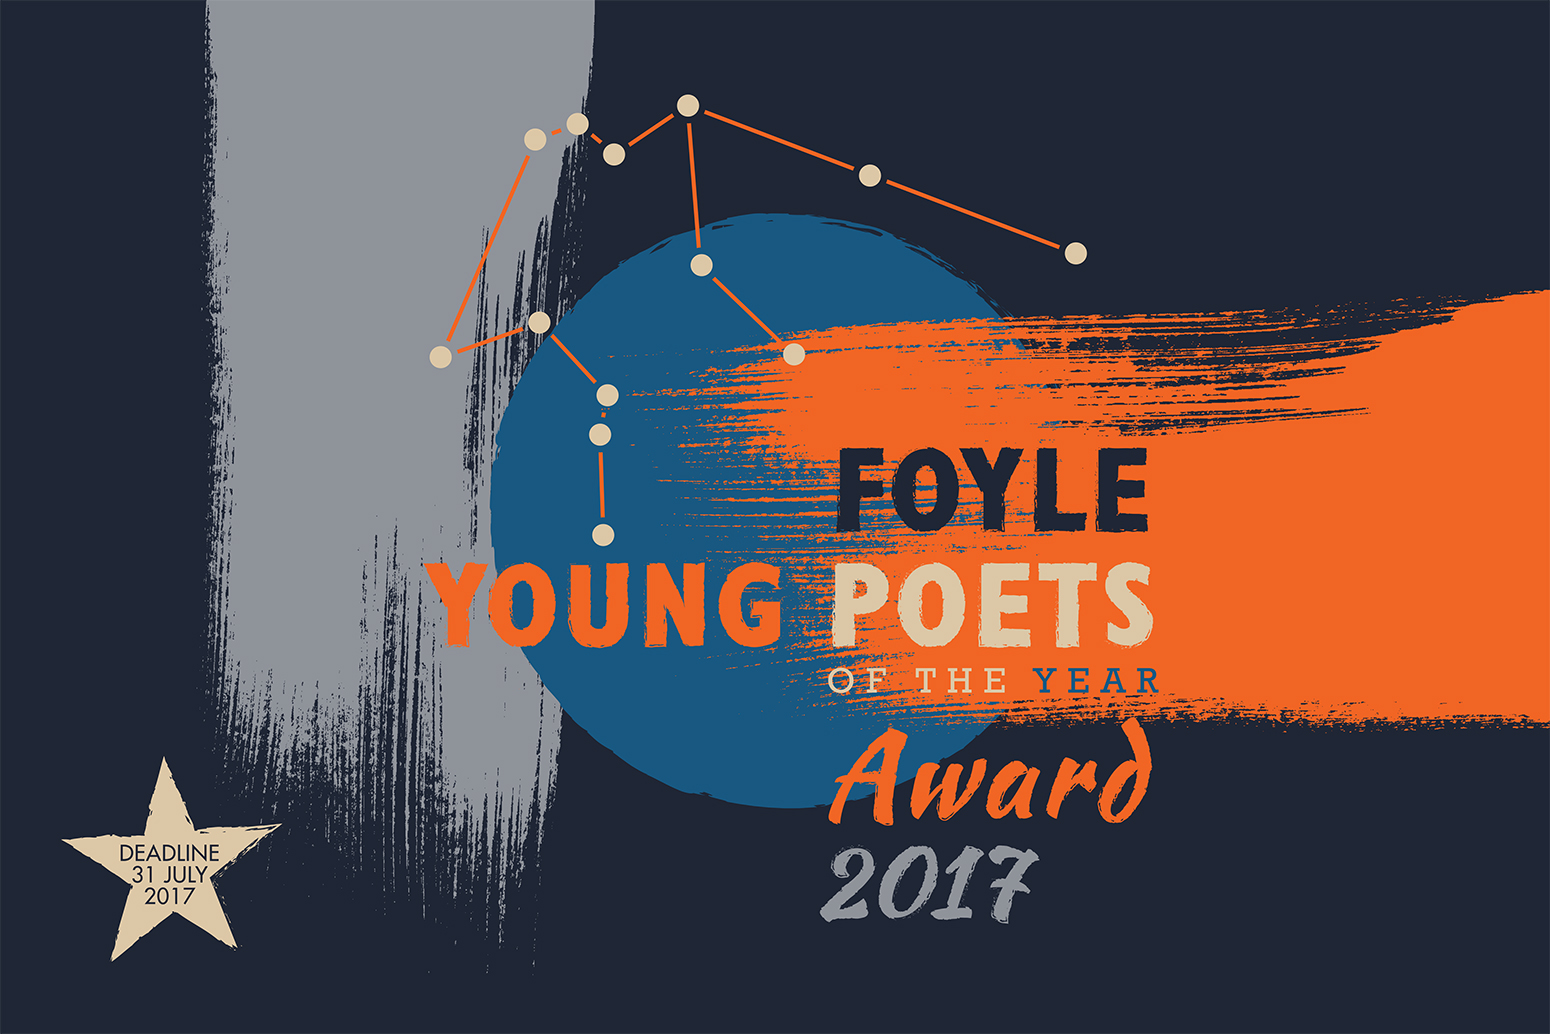 Foyle Young Poets of the Year Award